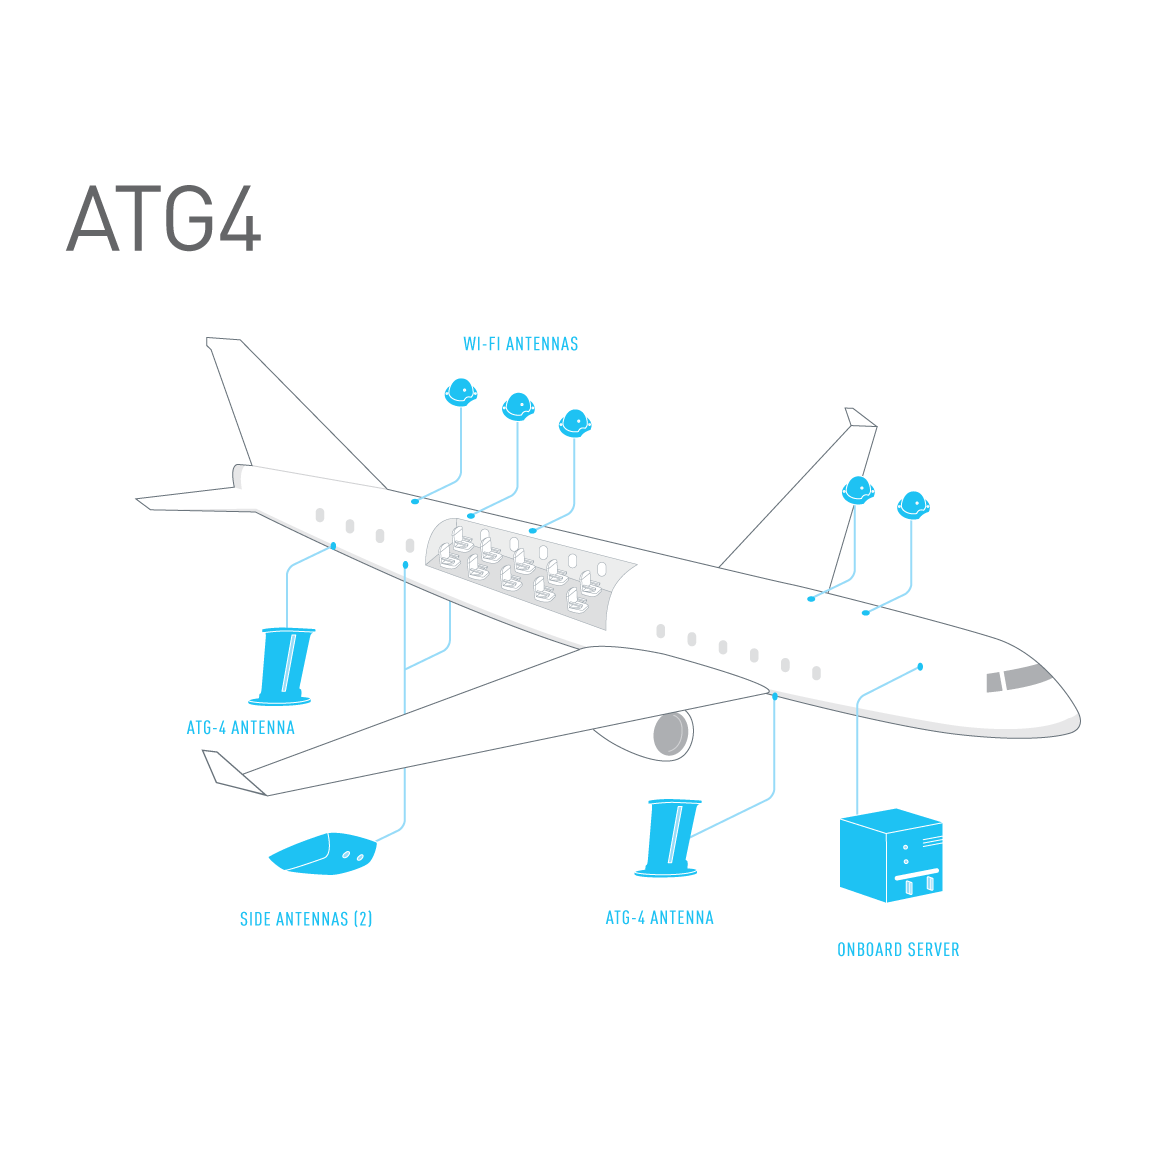 GogoTech_EquipmentDiagrams_ATG4